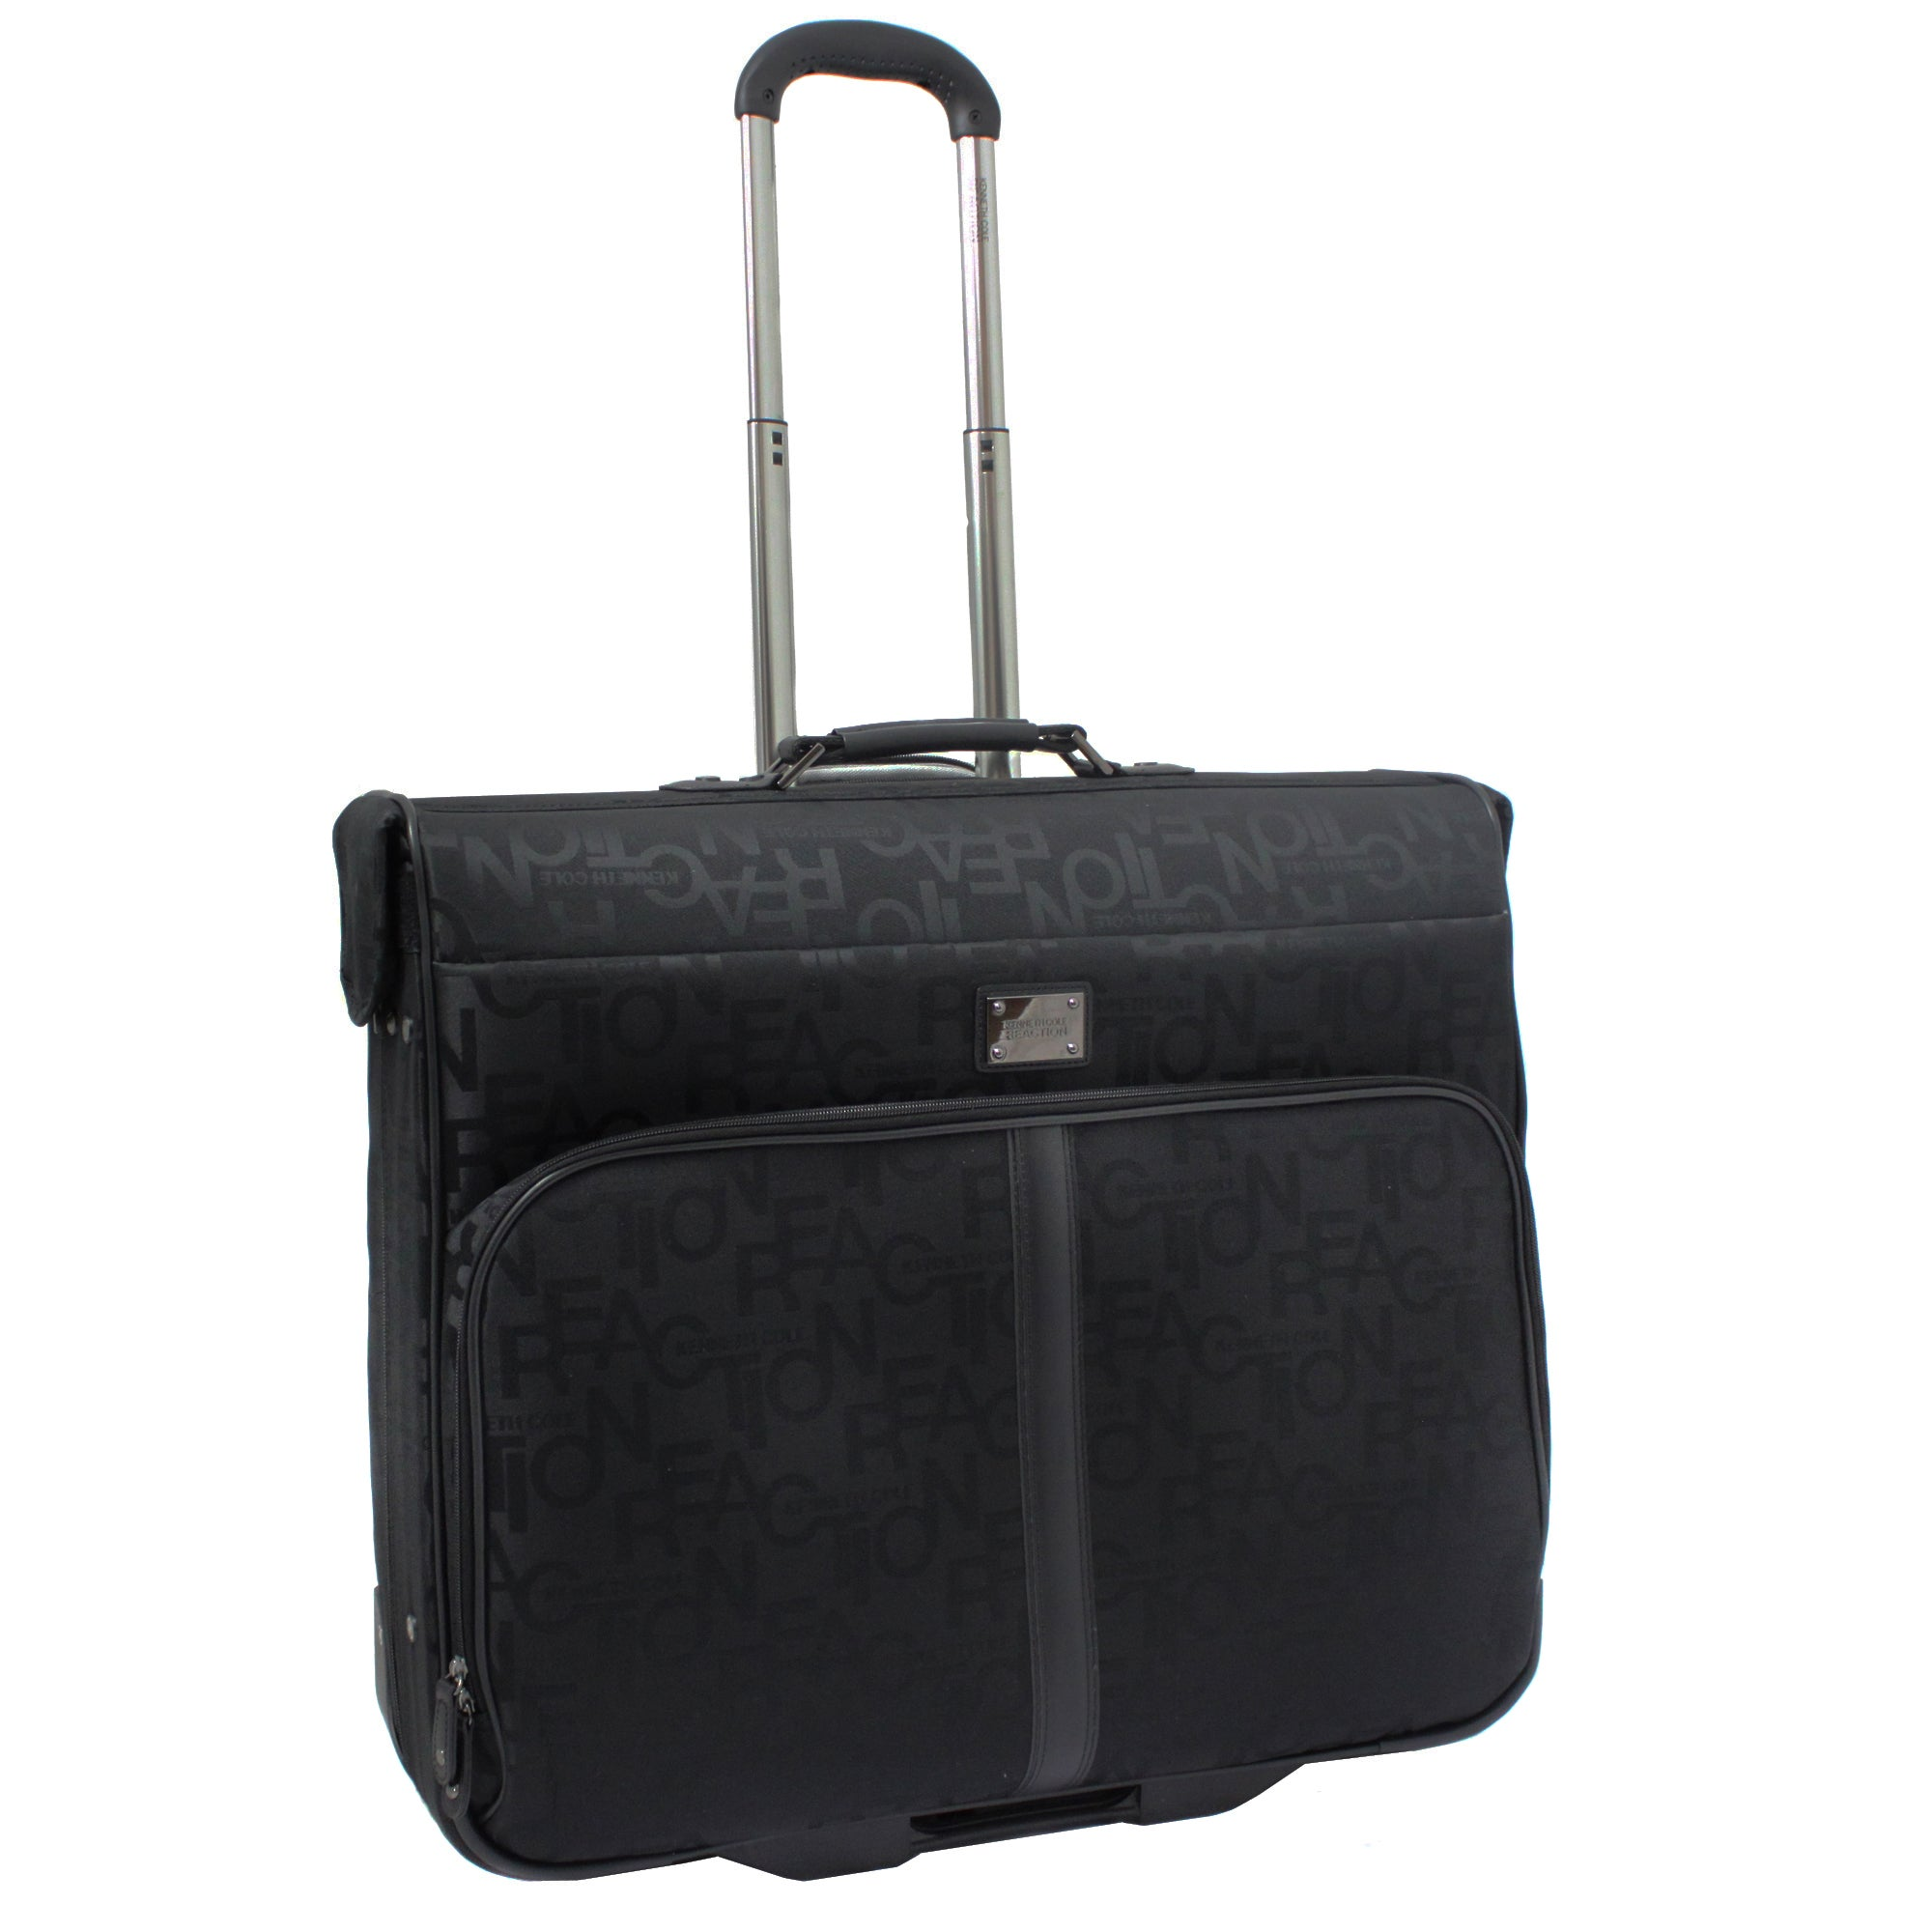 Luggage by O Kenneth Cole Reaction 'Taking Flight' Black Wheeled Garment Bag at Sears.com